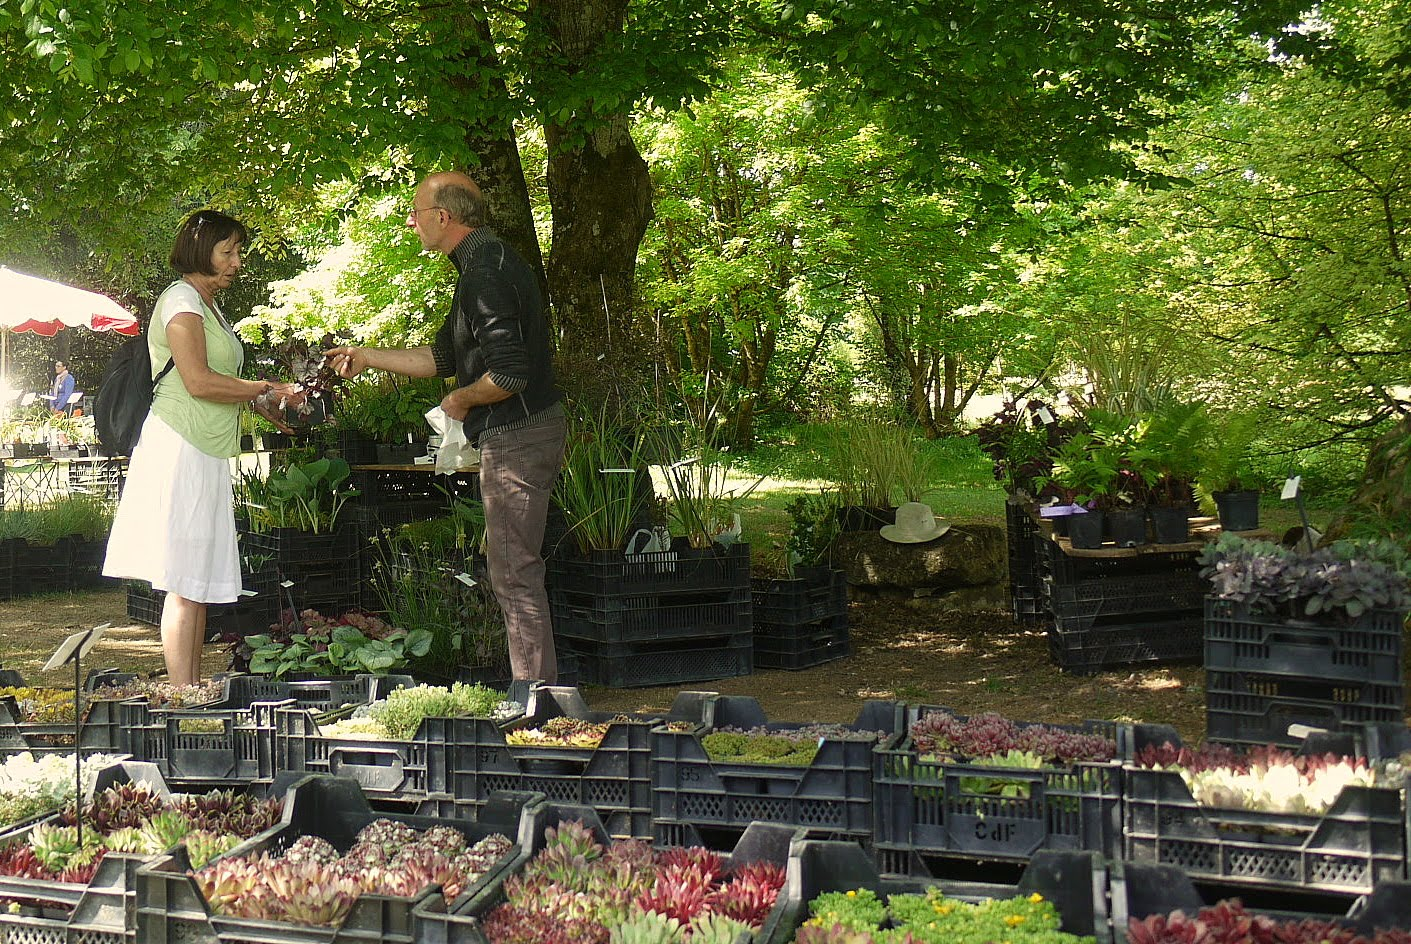 Chateau neuvic plant fair for Gardening tools for 3 year old